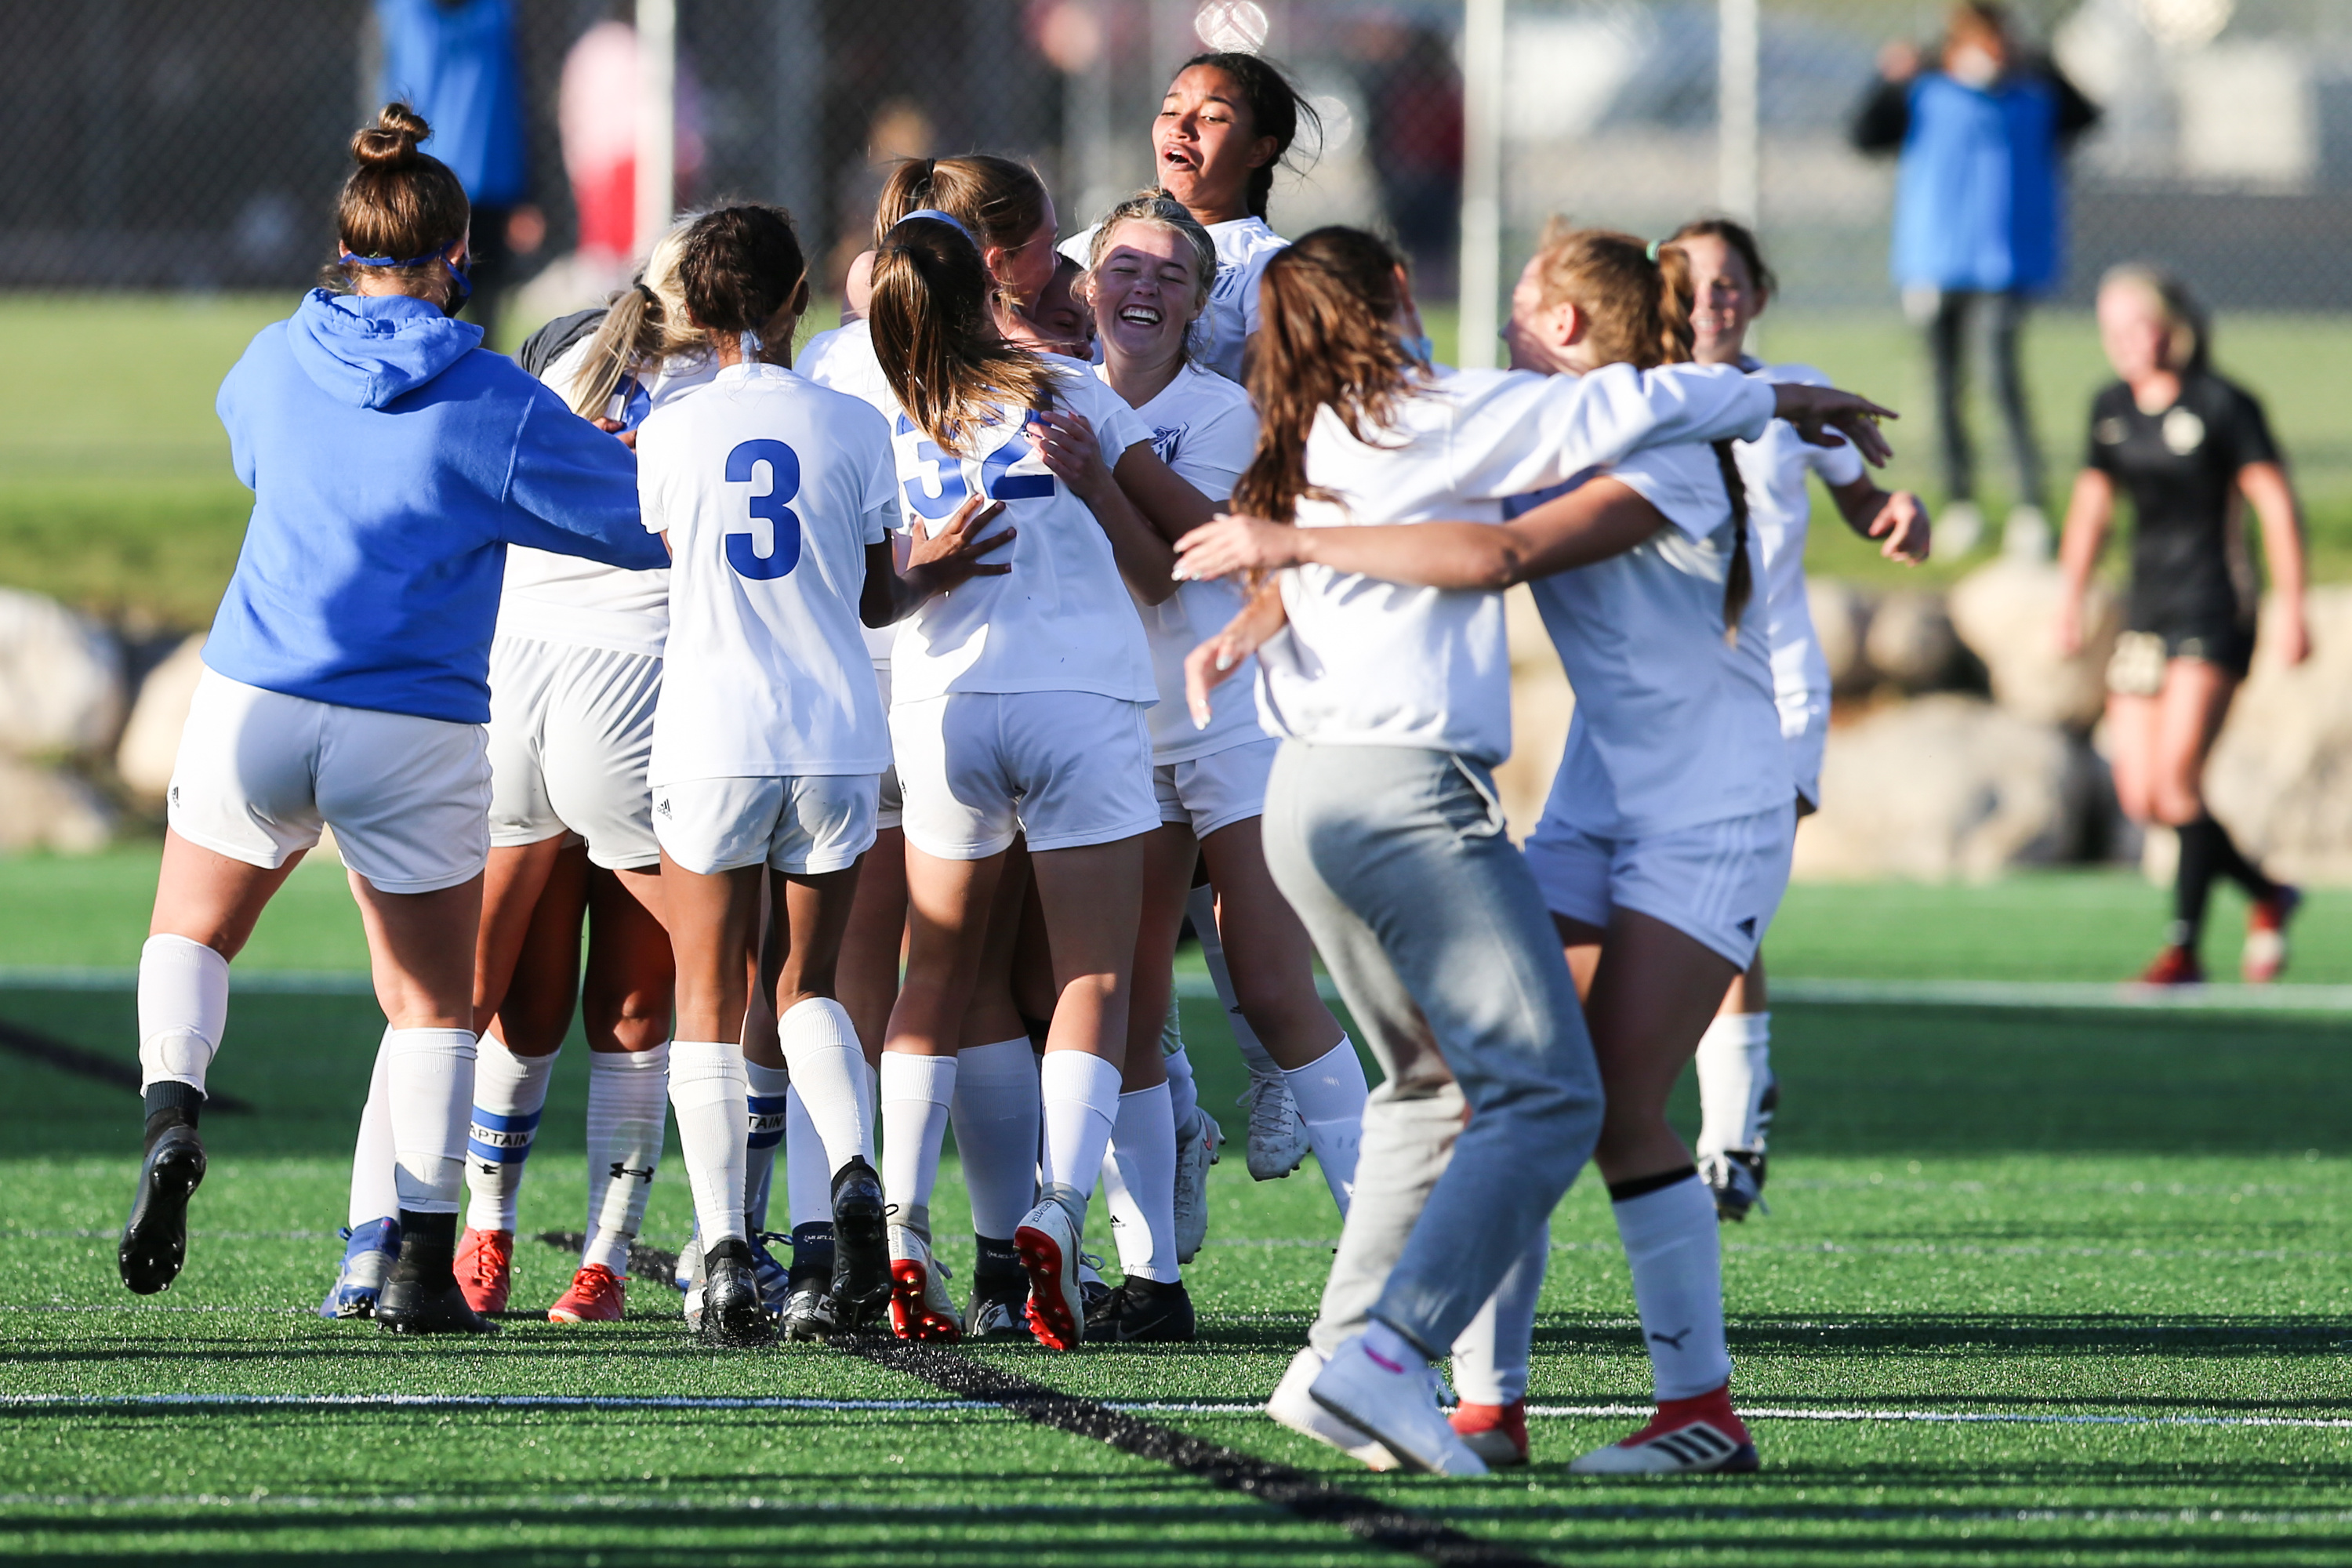 Fremont players celebrate together after winning a 6A high school girls soccer quarterfinal against Lone Peak at Lone Peak High School in Highland on Thursday, Oct. 15, 2020.